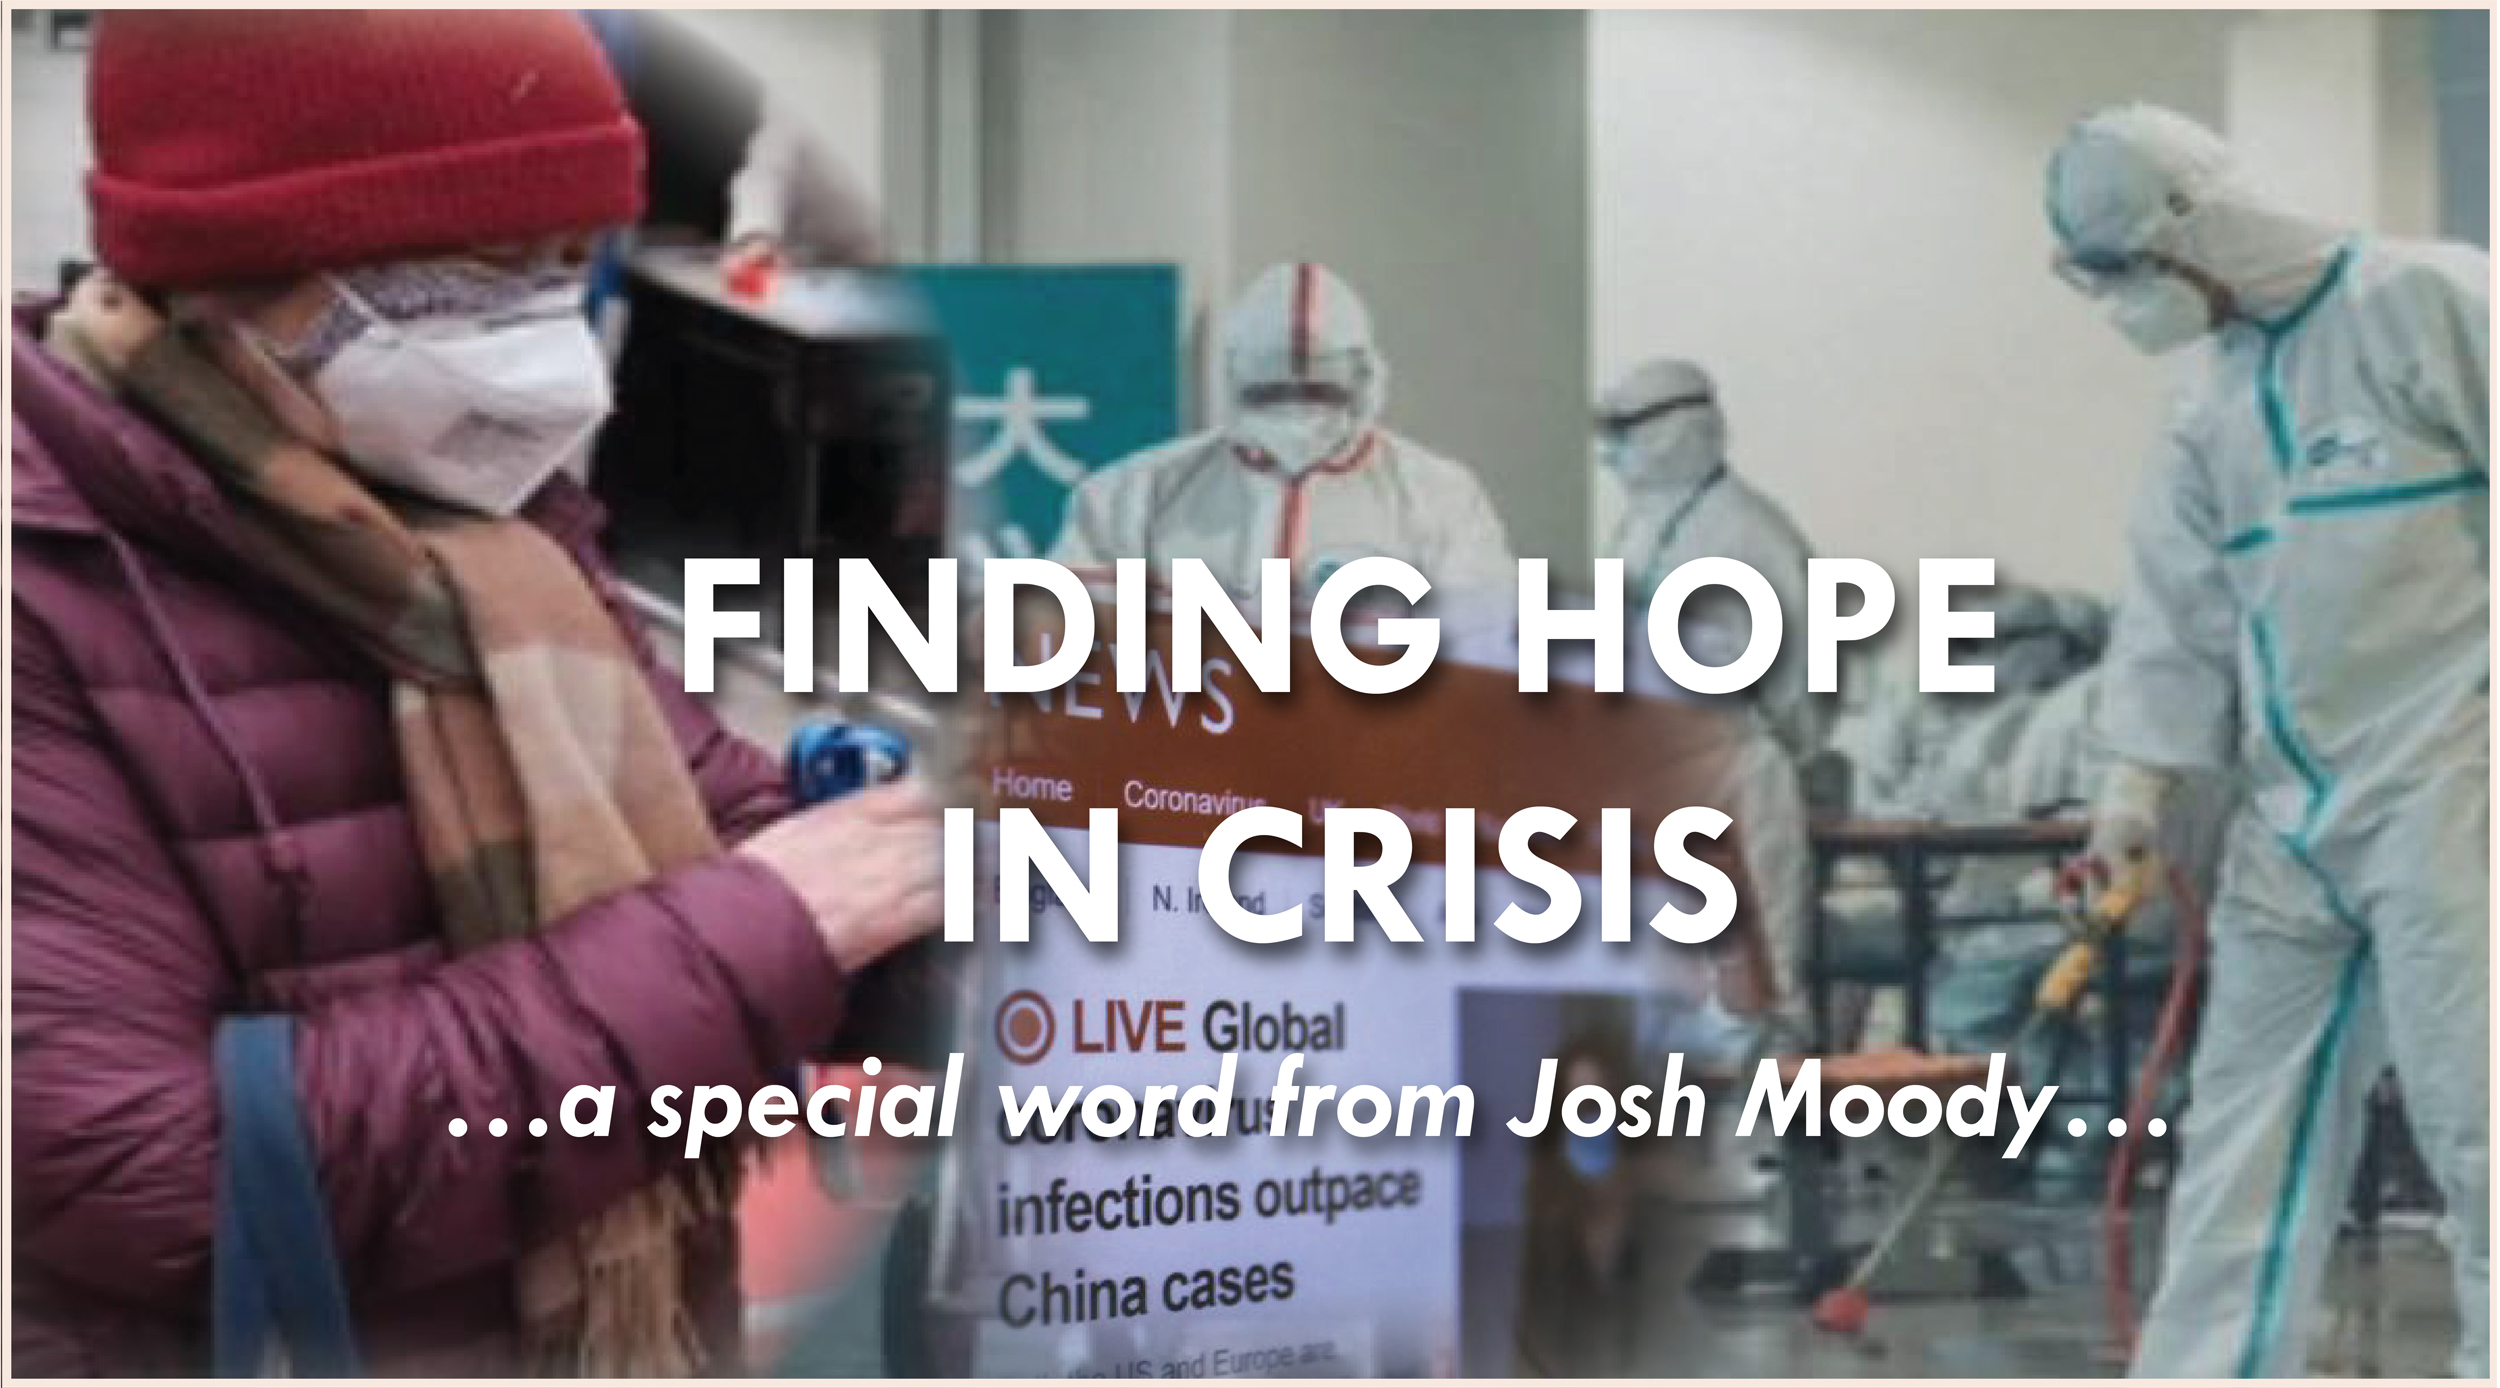 GCL_Finding Hope in Crisis_video-title_V3-03sized